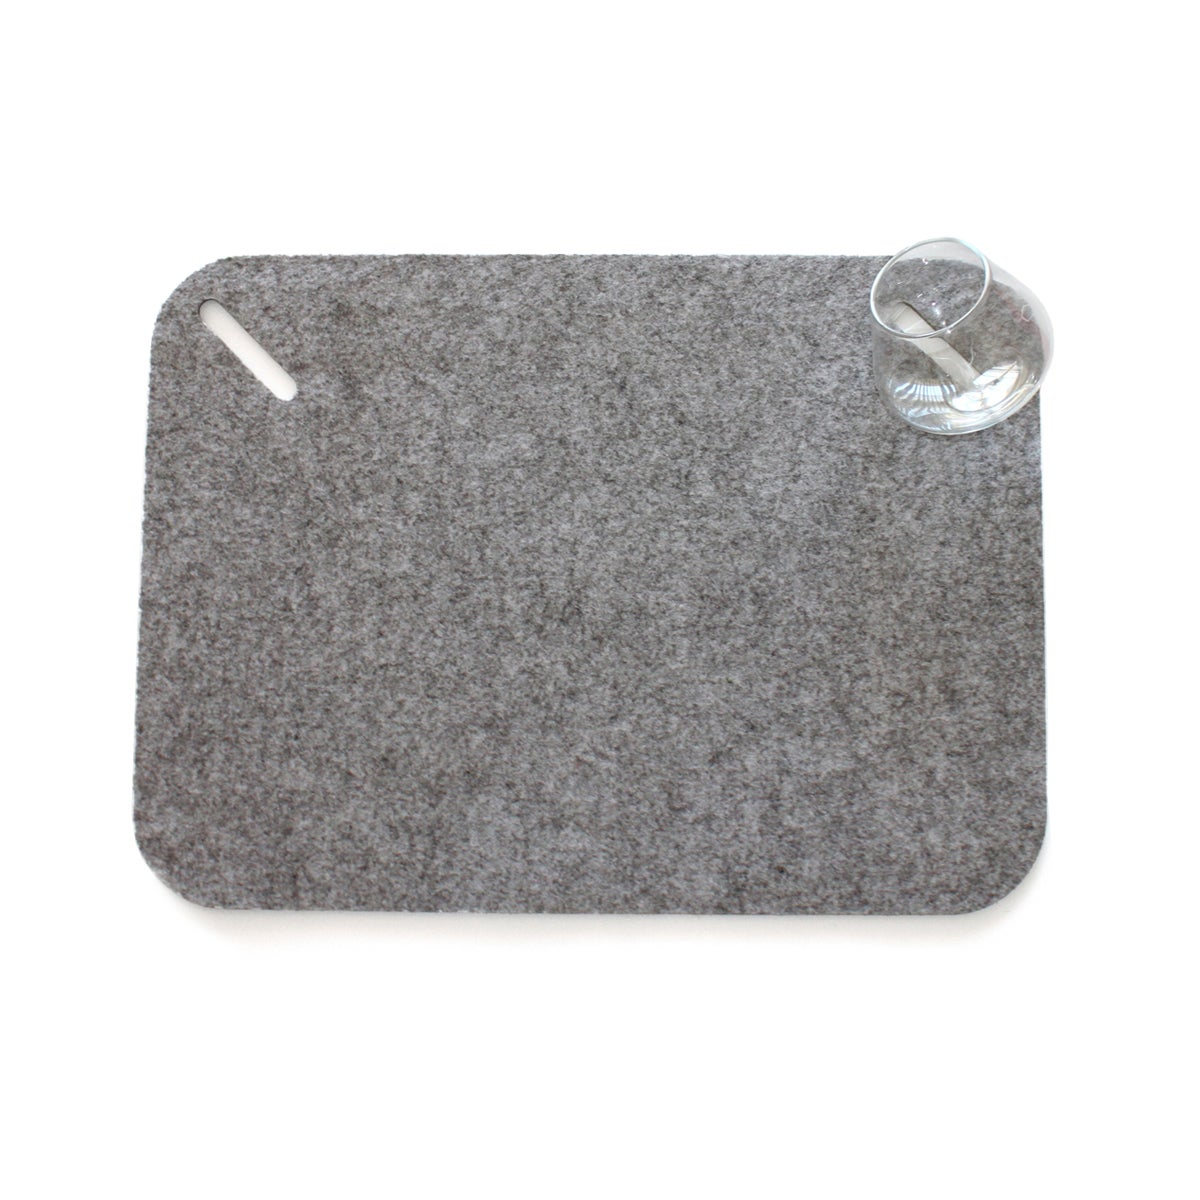 Image of Cupa-Place Grey Placemats